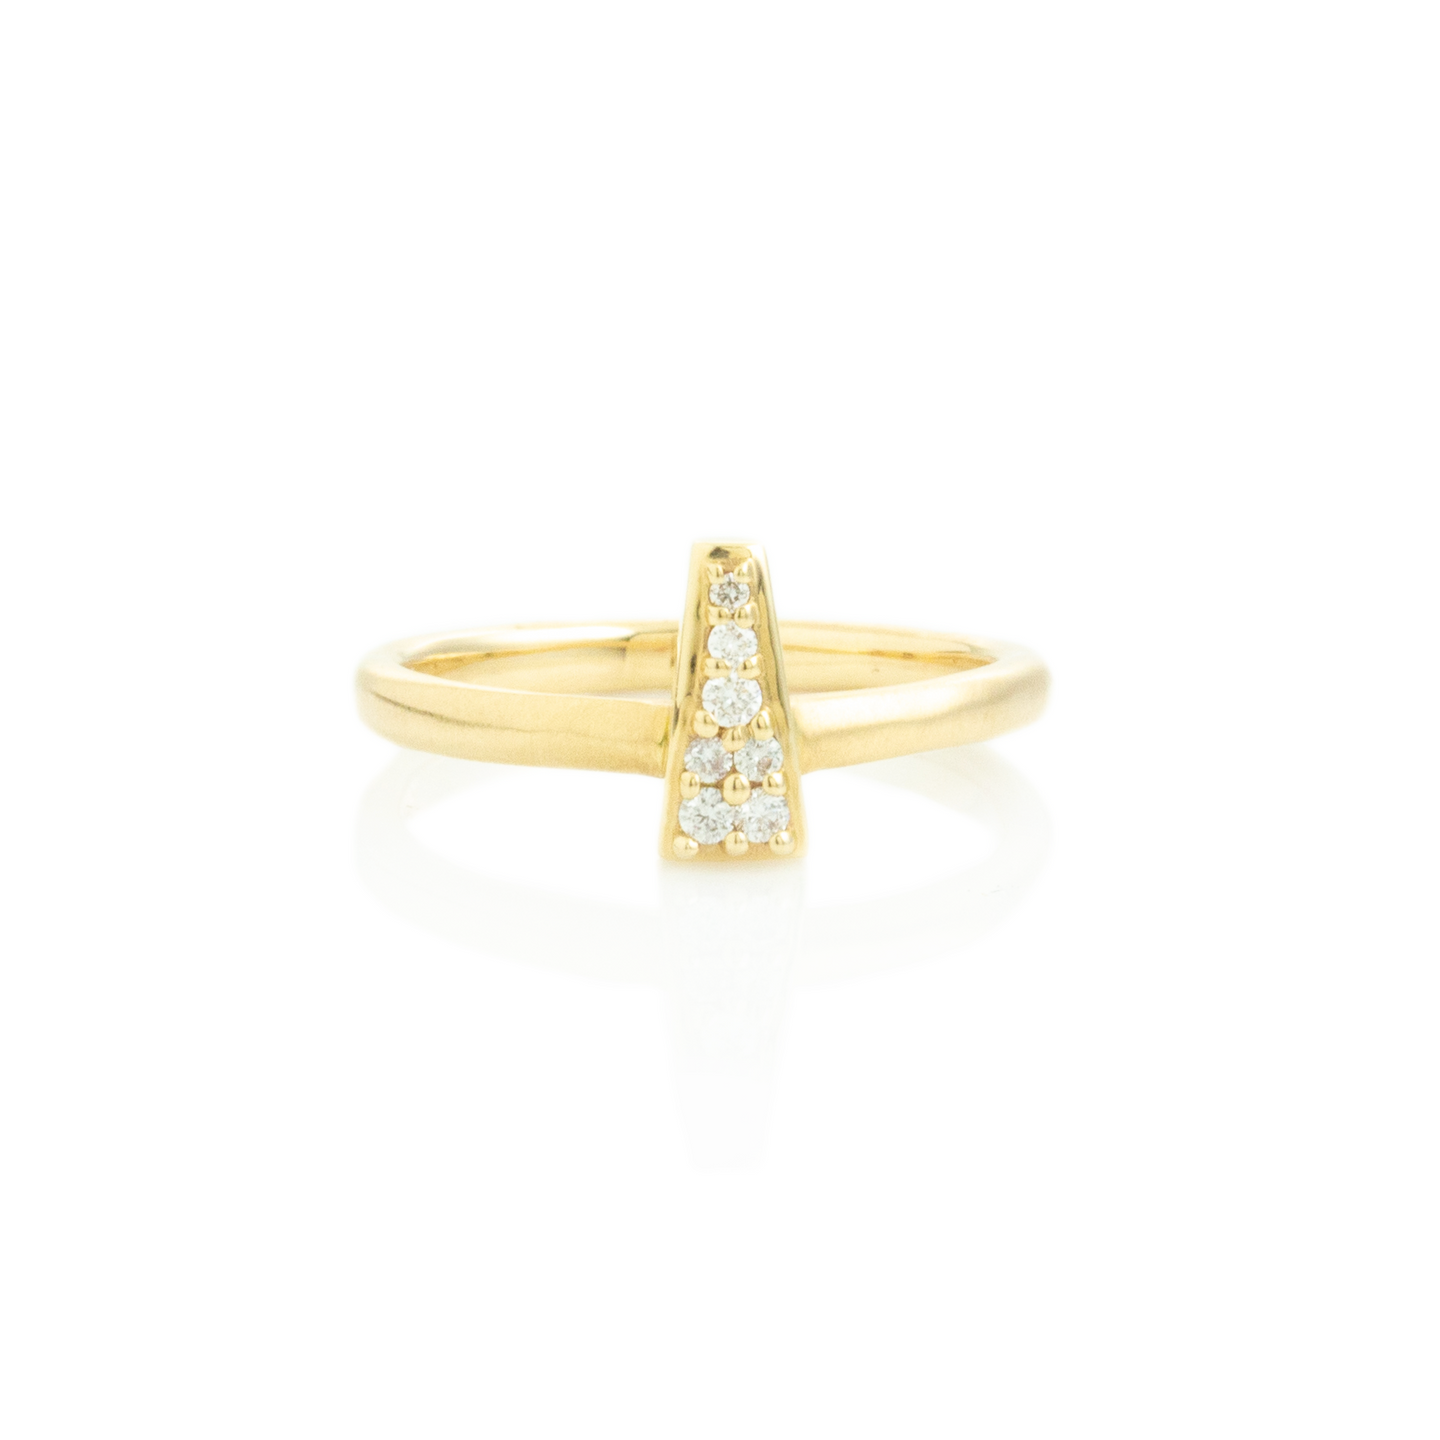 14K Gold Tapered Baguette Diamond Pave Cluster Ring